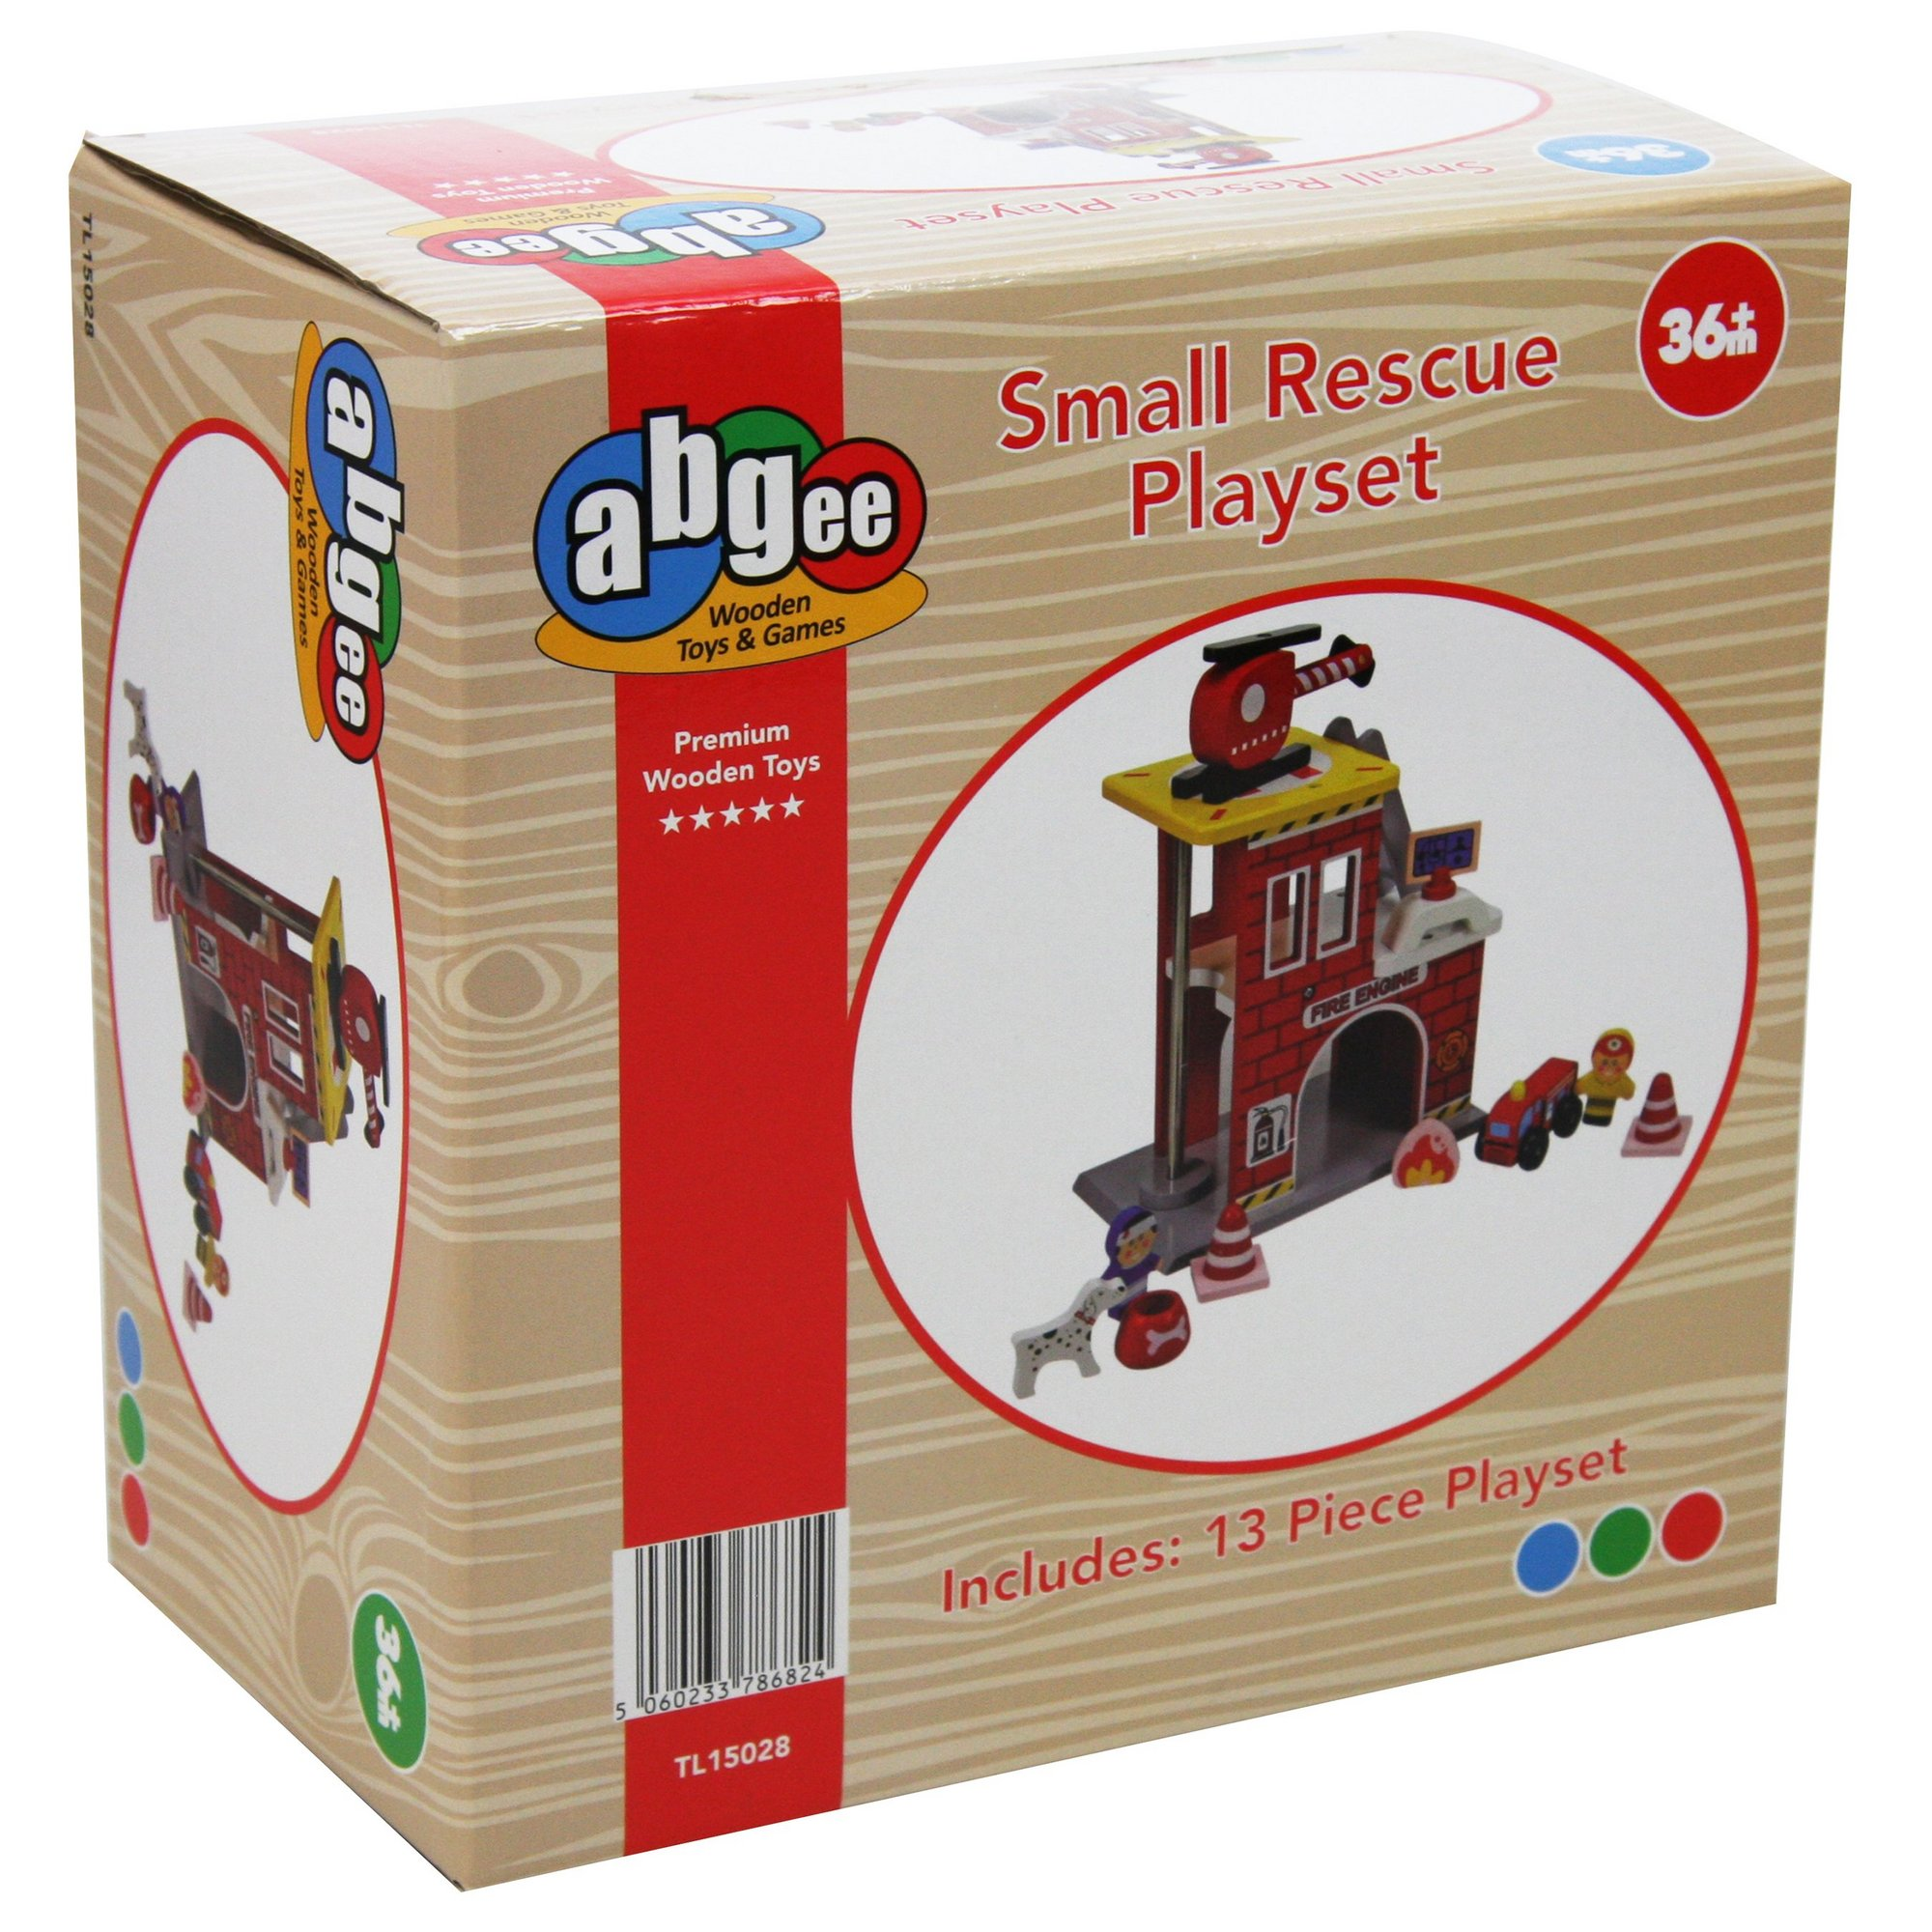 Image of Small Rescue Playset